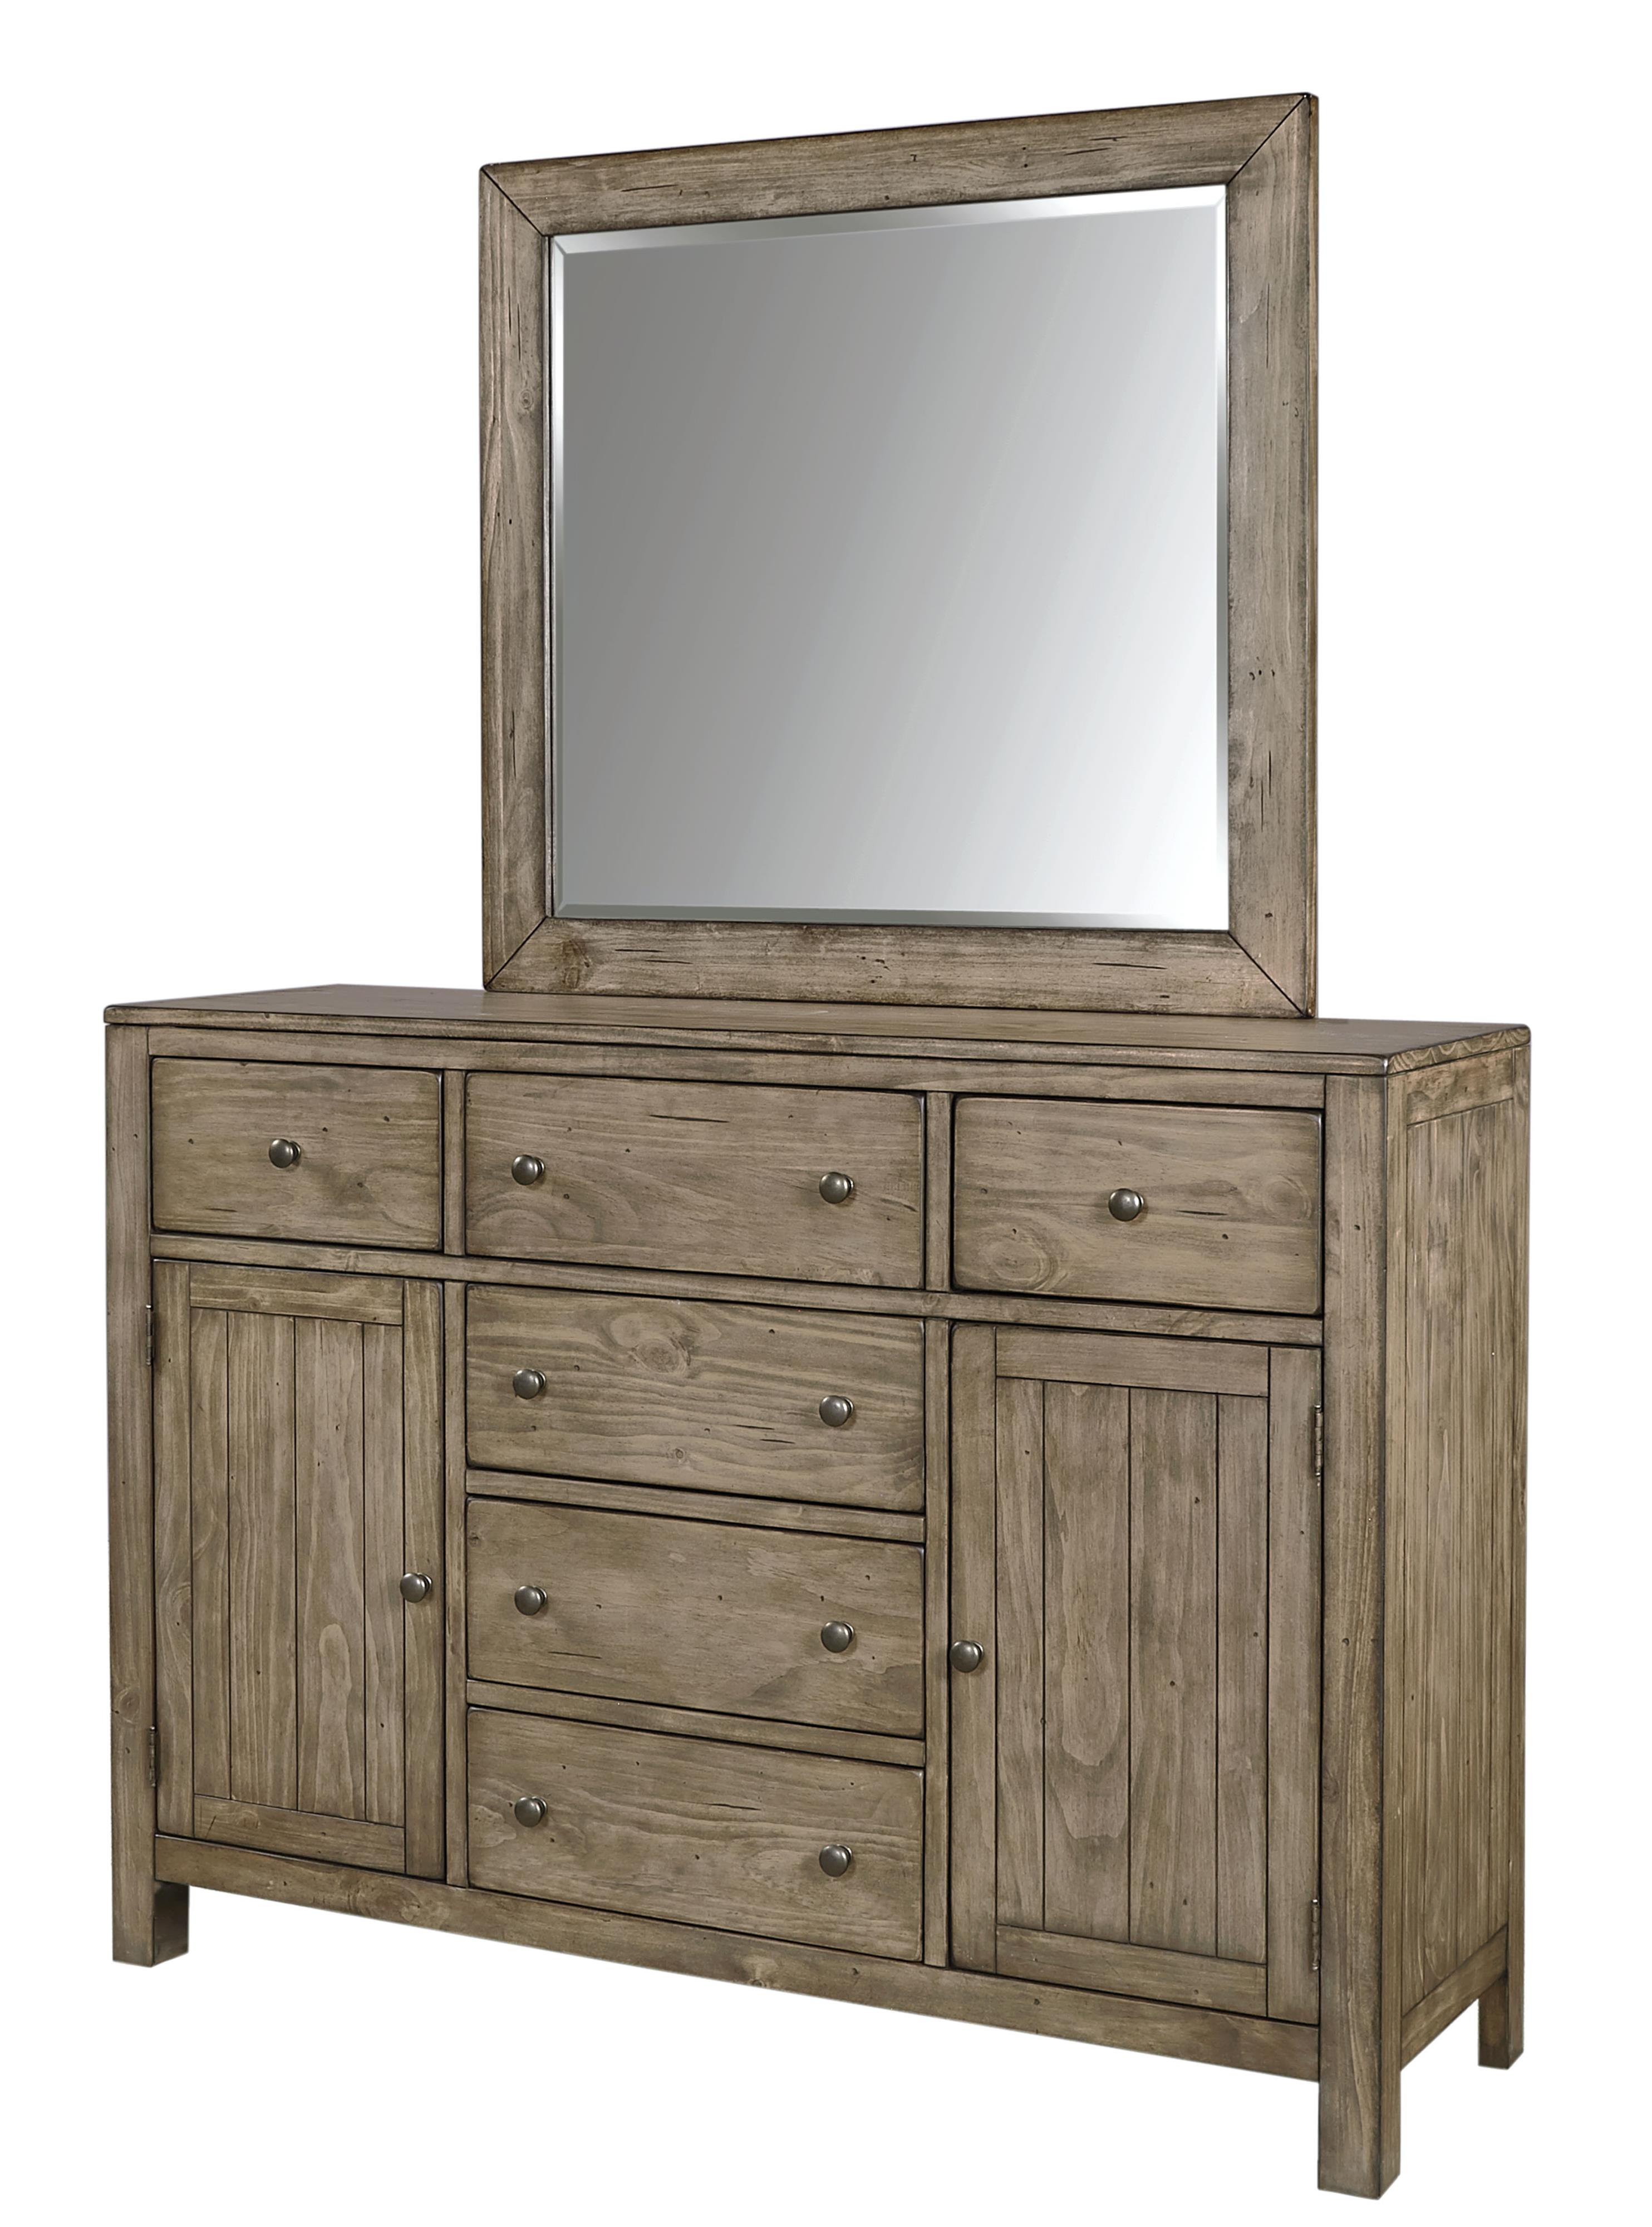 Aspenhome Tildon I56 455 Chesser With 6 Drawers And 2 Doors Becker Furniture World Dresser